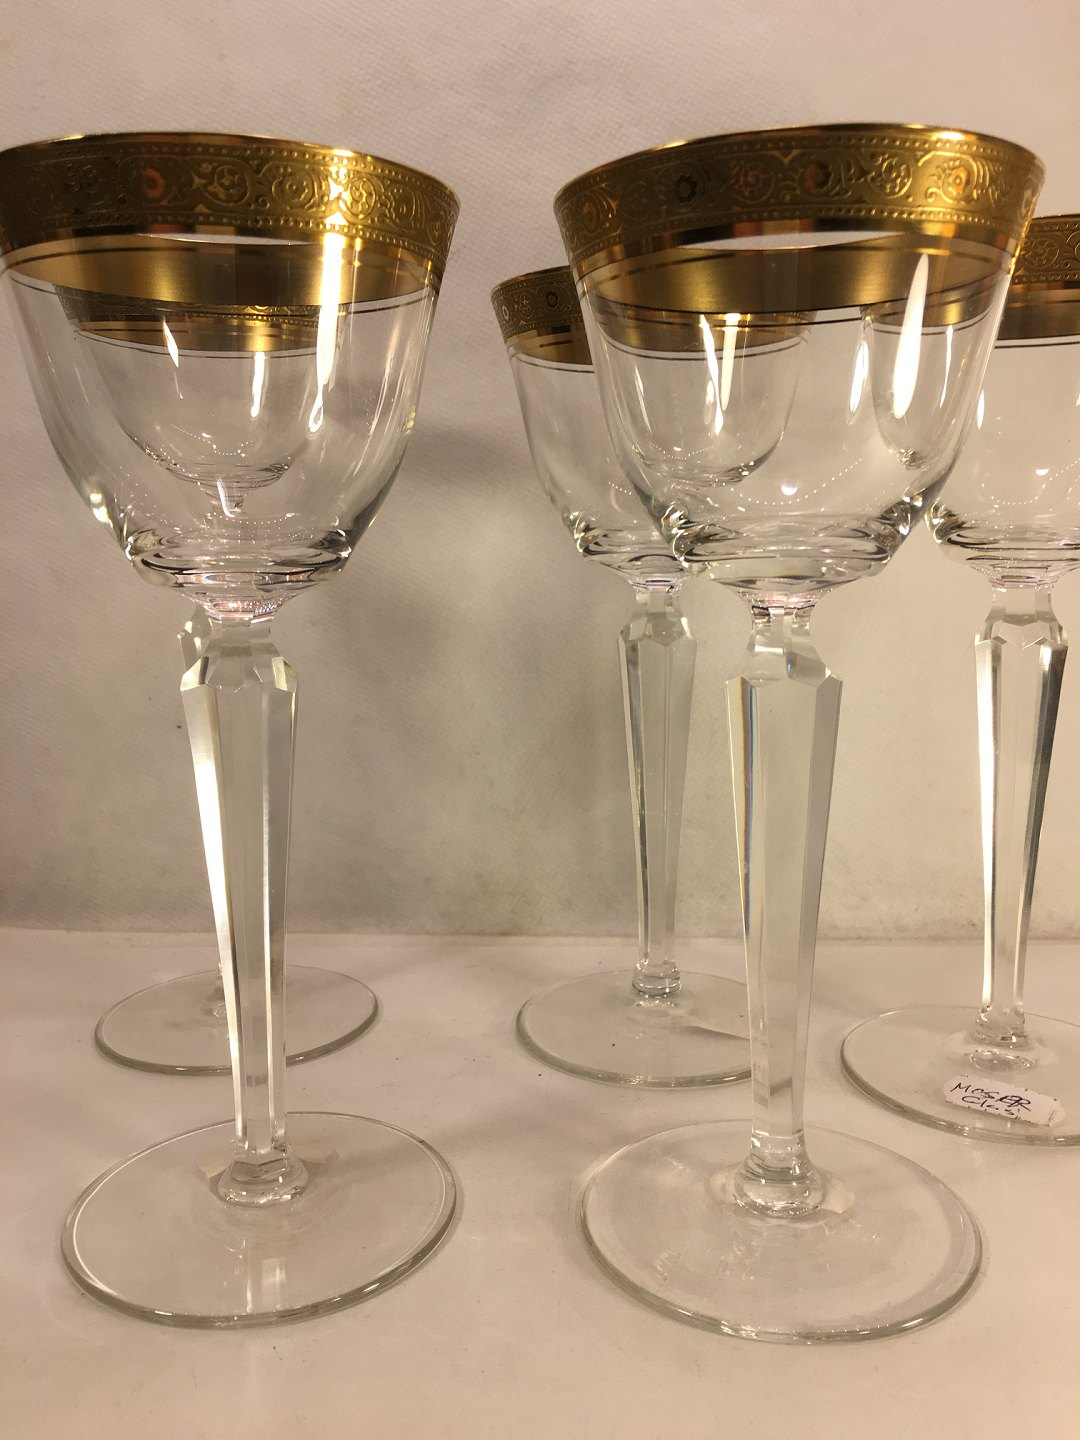 Antik Glas Med Sort Fod Worldantique Moser Glass With Beautifully Decorated Gold Edge